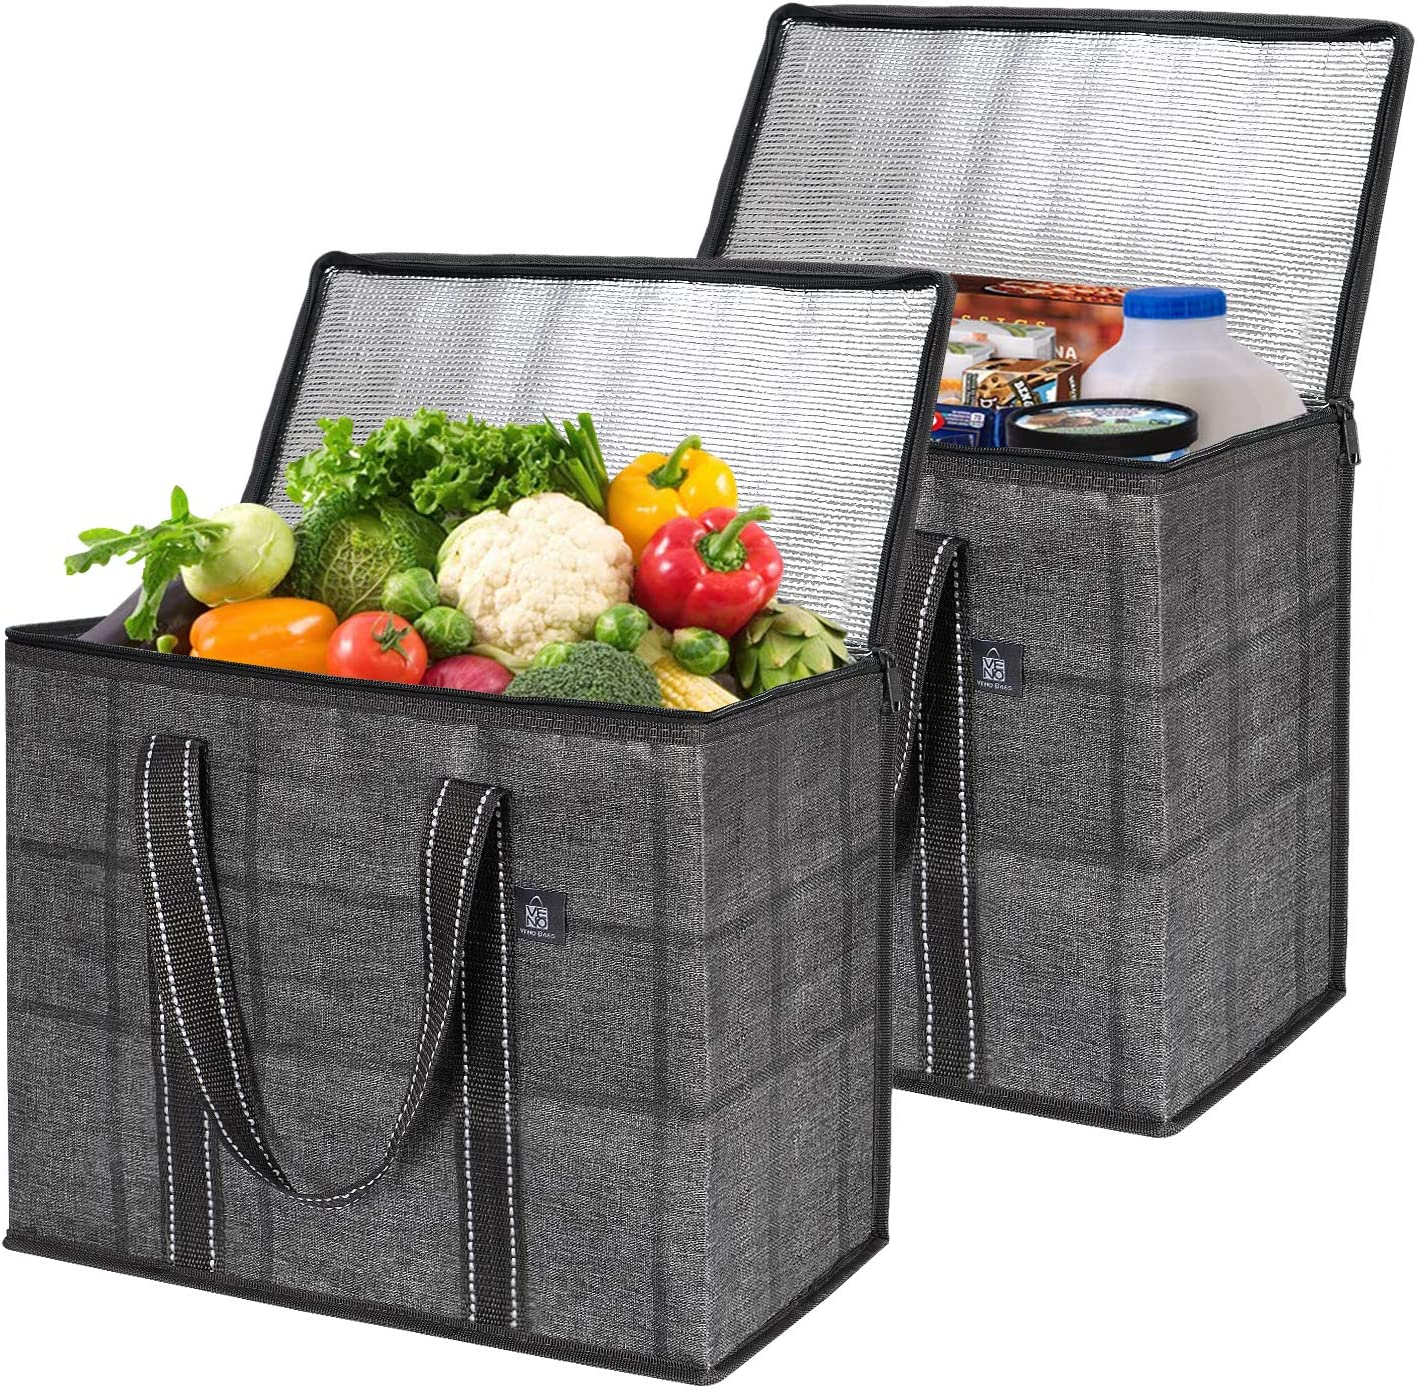 2 Pack Insulated Reusable Grocery Bag With Cardboard Bottom by VENO, Durable, Heavy Duty, Large Size, Stands Upright, Collapsible, Sturdy Zipper, Recycled Material, Eco-Friendly (Black/Windowpane)